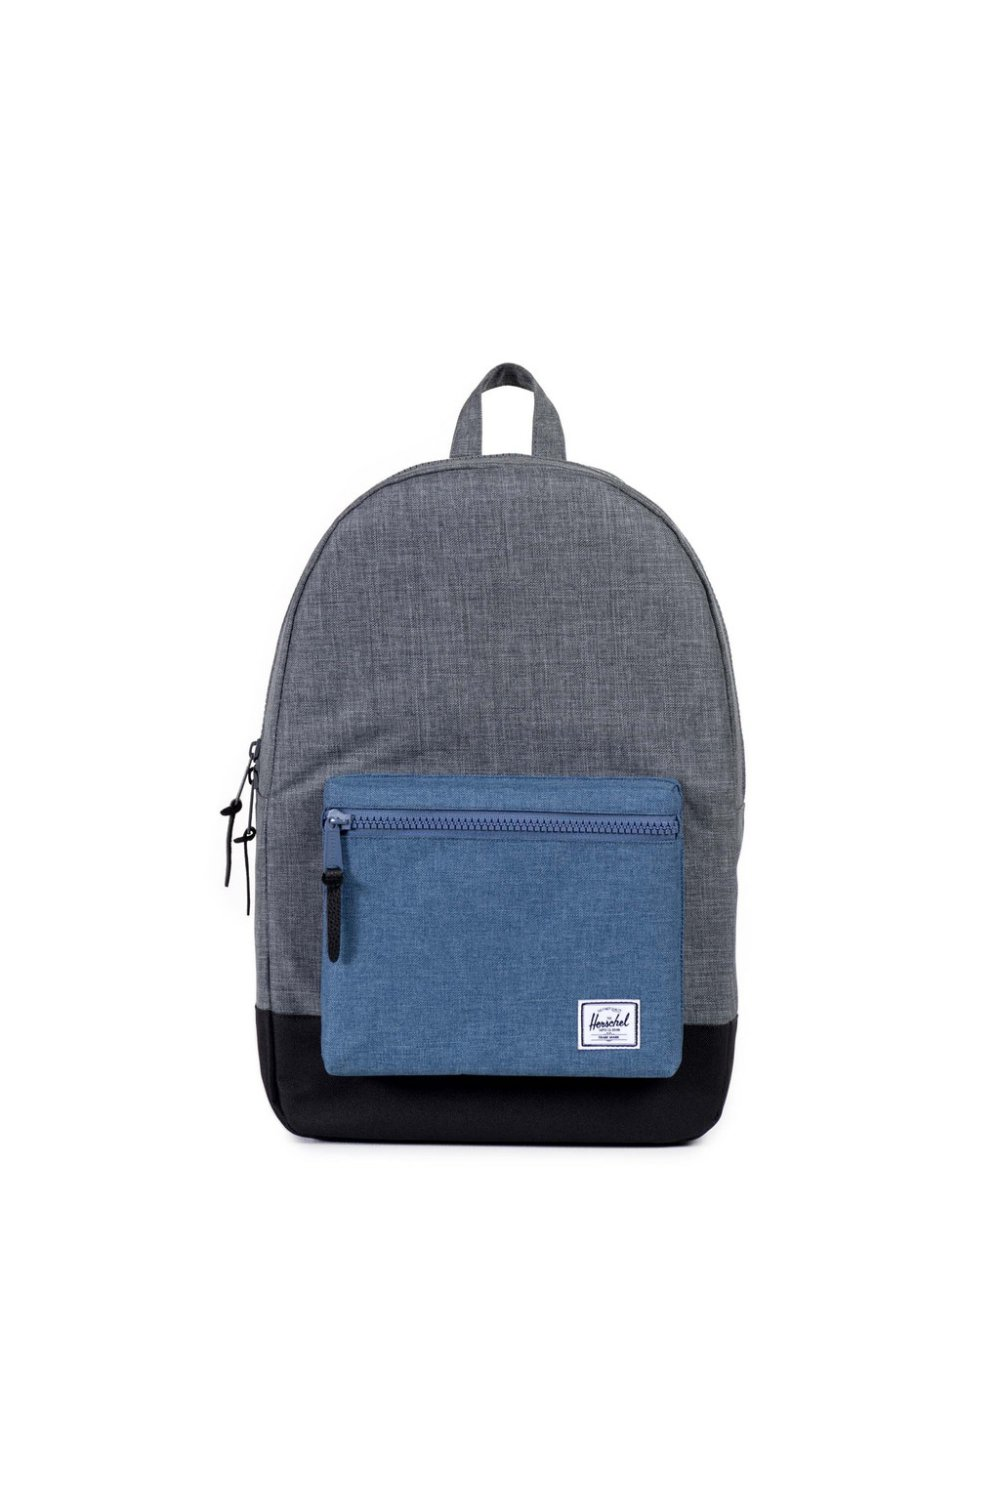 Herschel Supply Co Settlement Backpack (Charcoal Crosshatch Navy ... 36b65300da